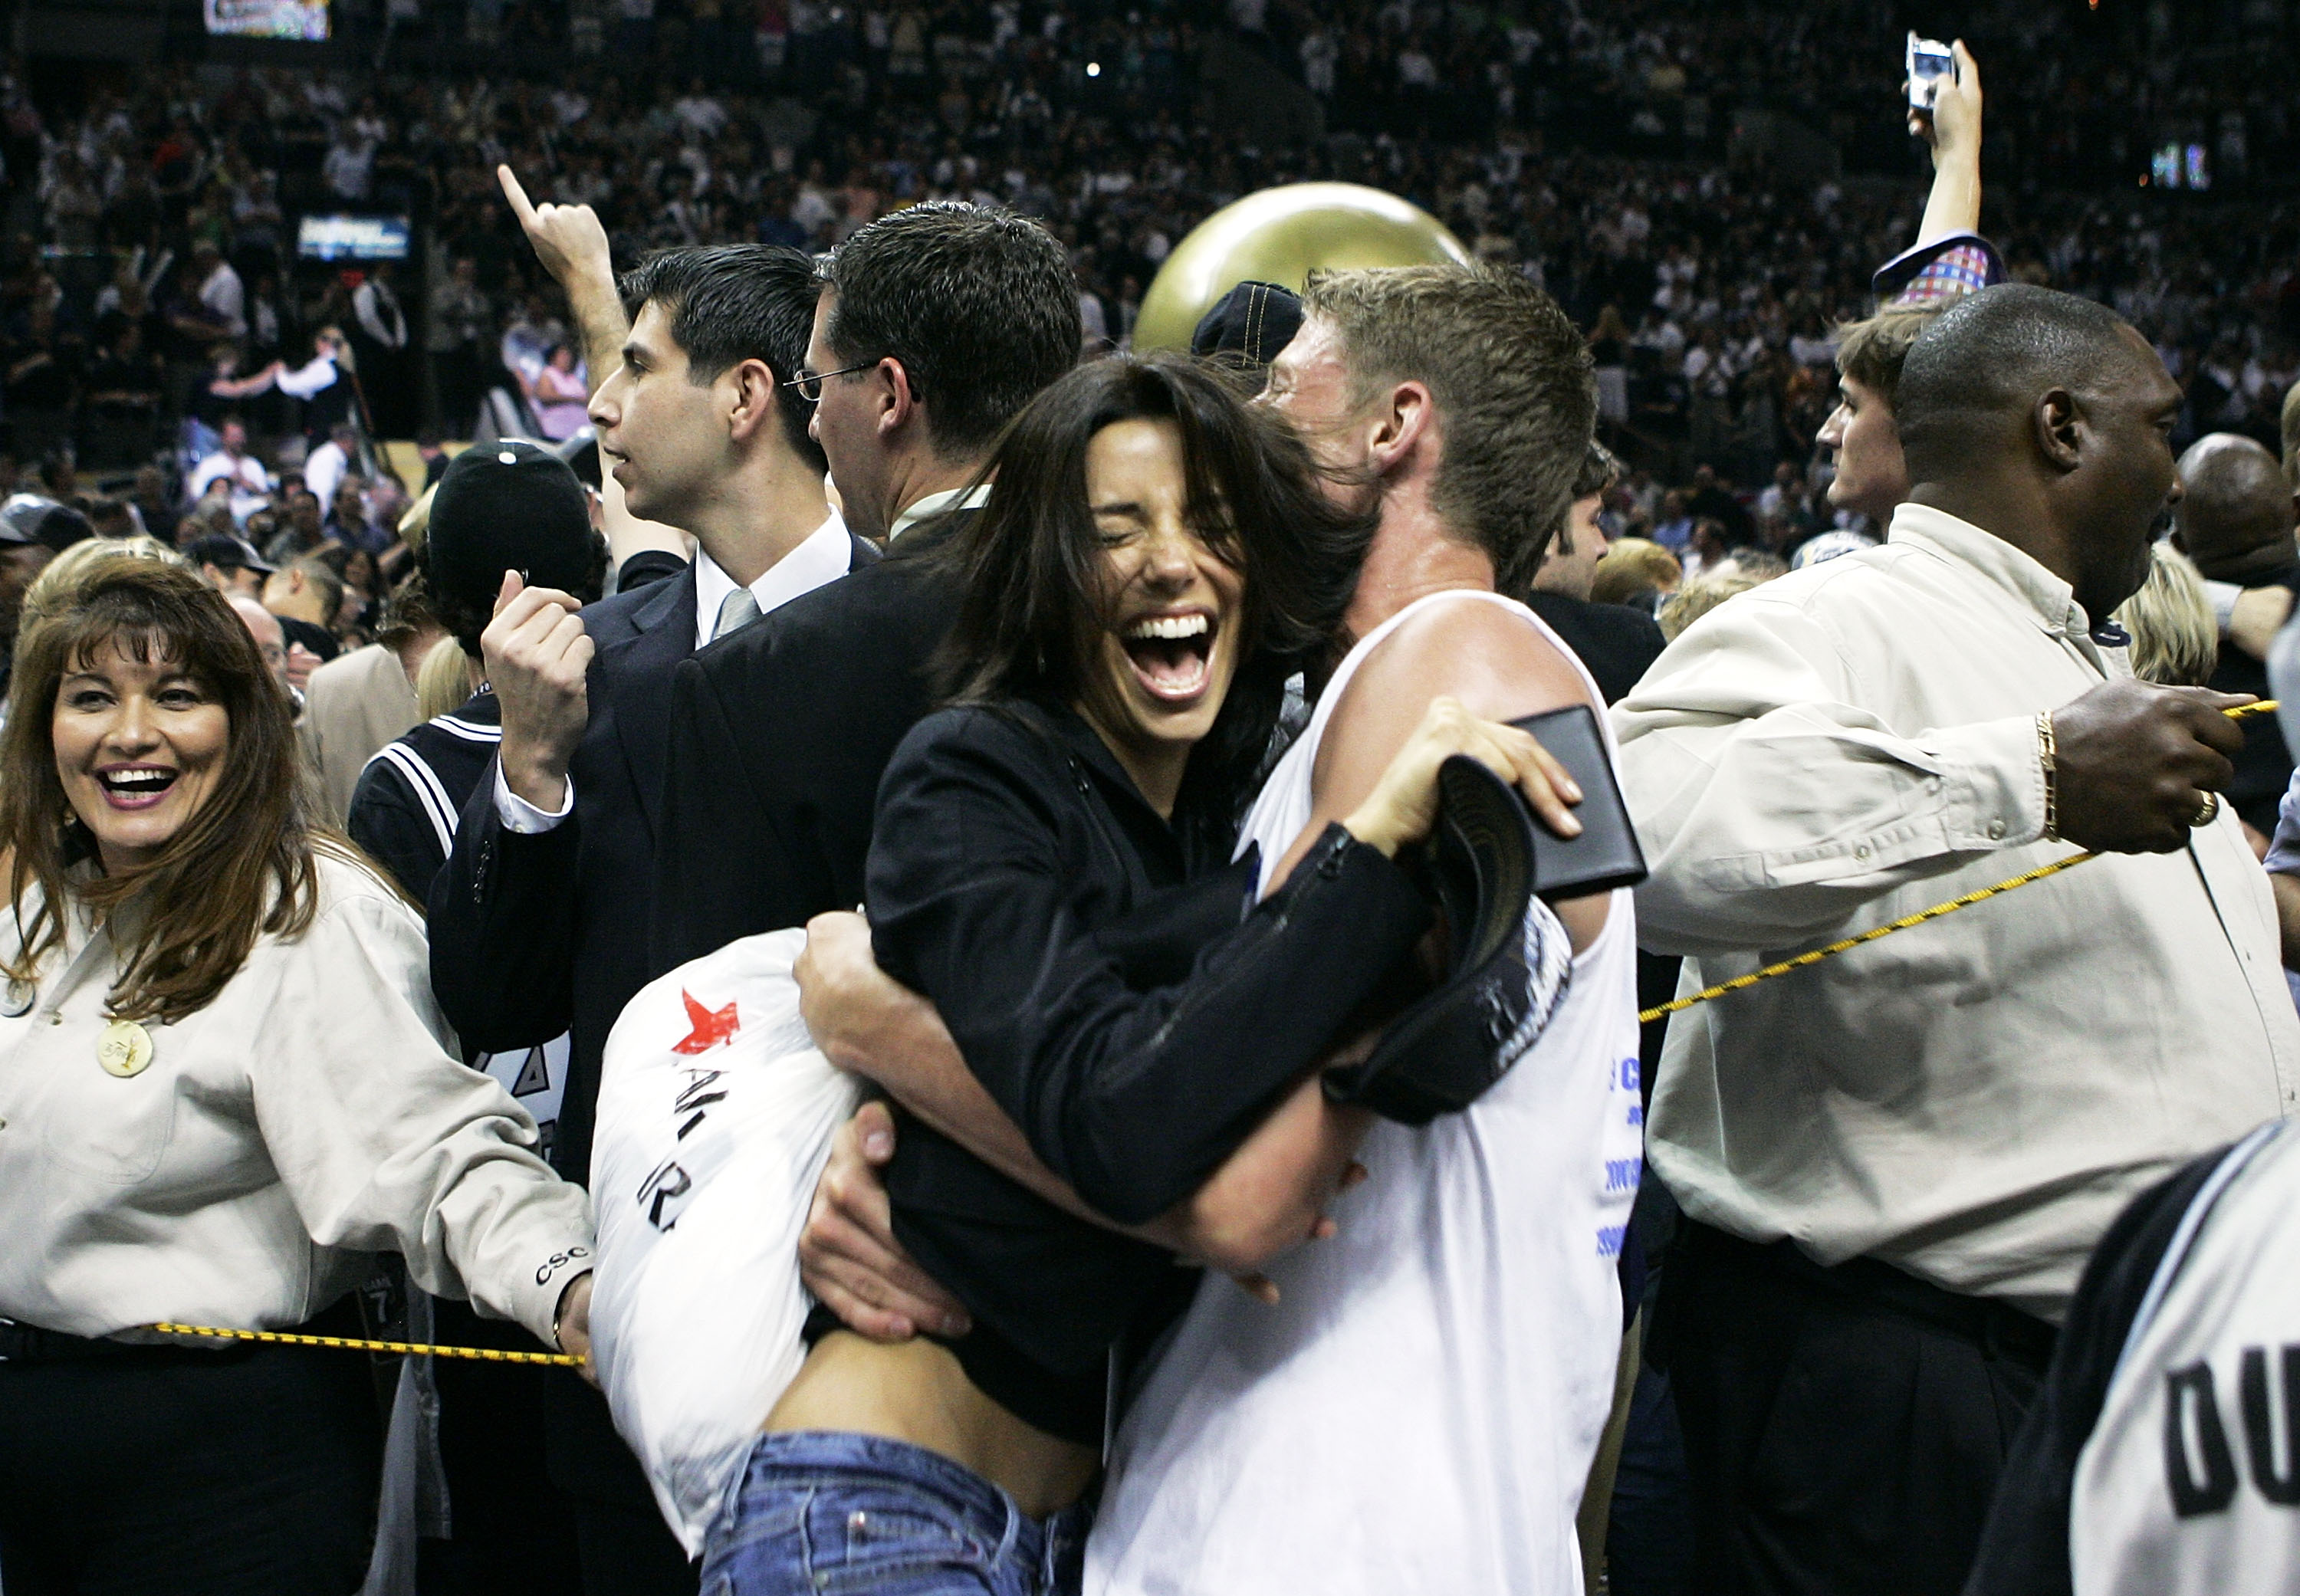 SAN ANTONIO - JUNE 23:  Actress Eva Longoria celebrates with an unknown fan as the San Antonio Spurs defeat the Detroit Pistons in Game seven of the 2005 NBA Finals at SBC Center on June 23, 2005 in San Antonio, Texas. The Spurs defeated the Pistons 81-74